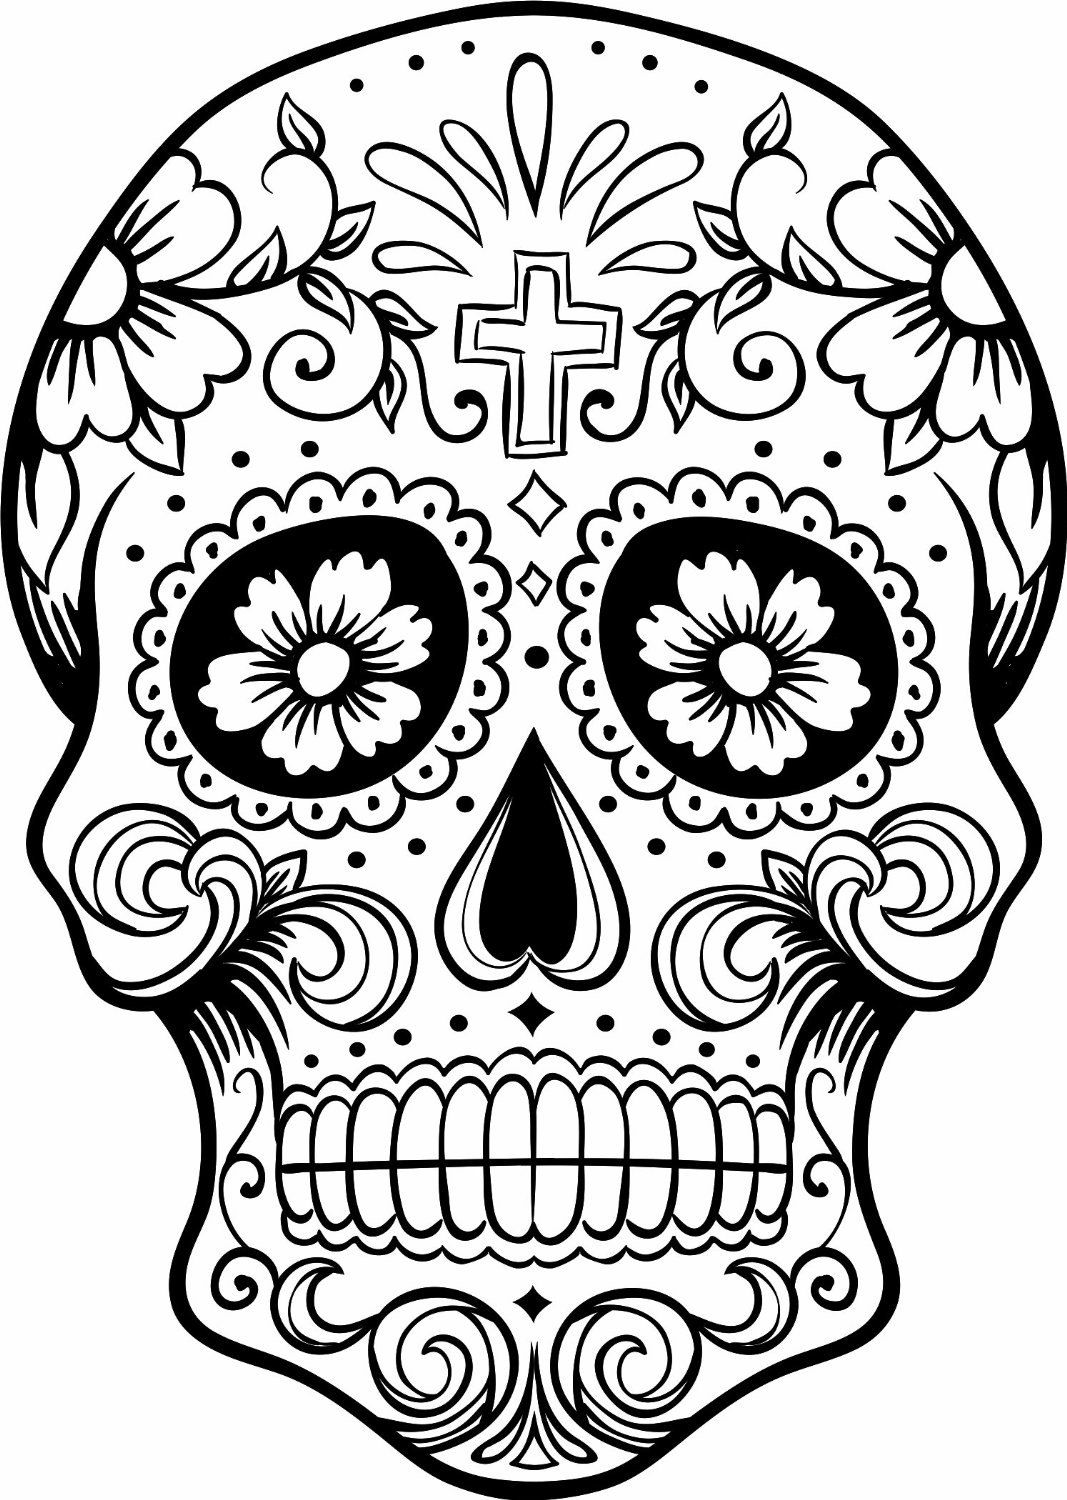 Day of Dead Sugar Skulls Coloring Pages | Tattoo Fran | Pinterest ...